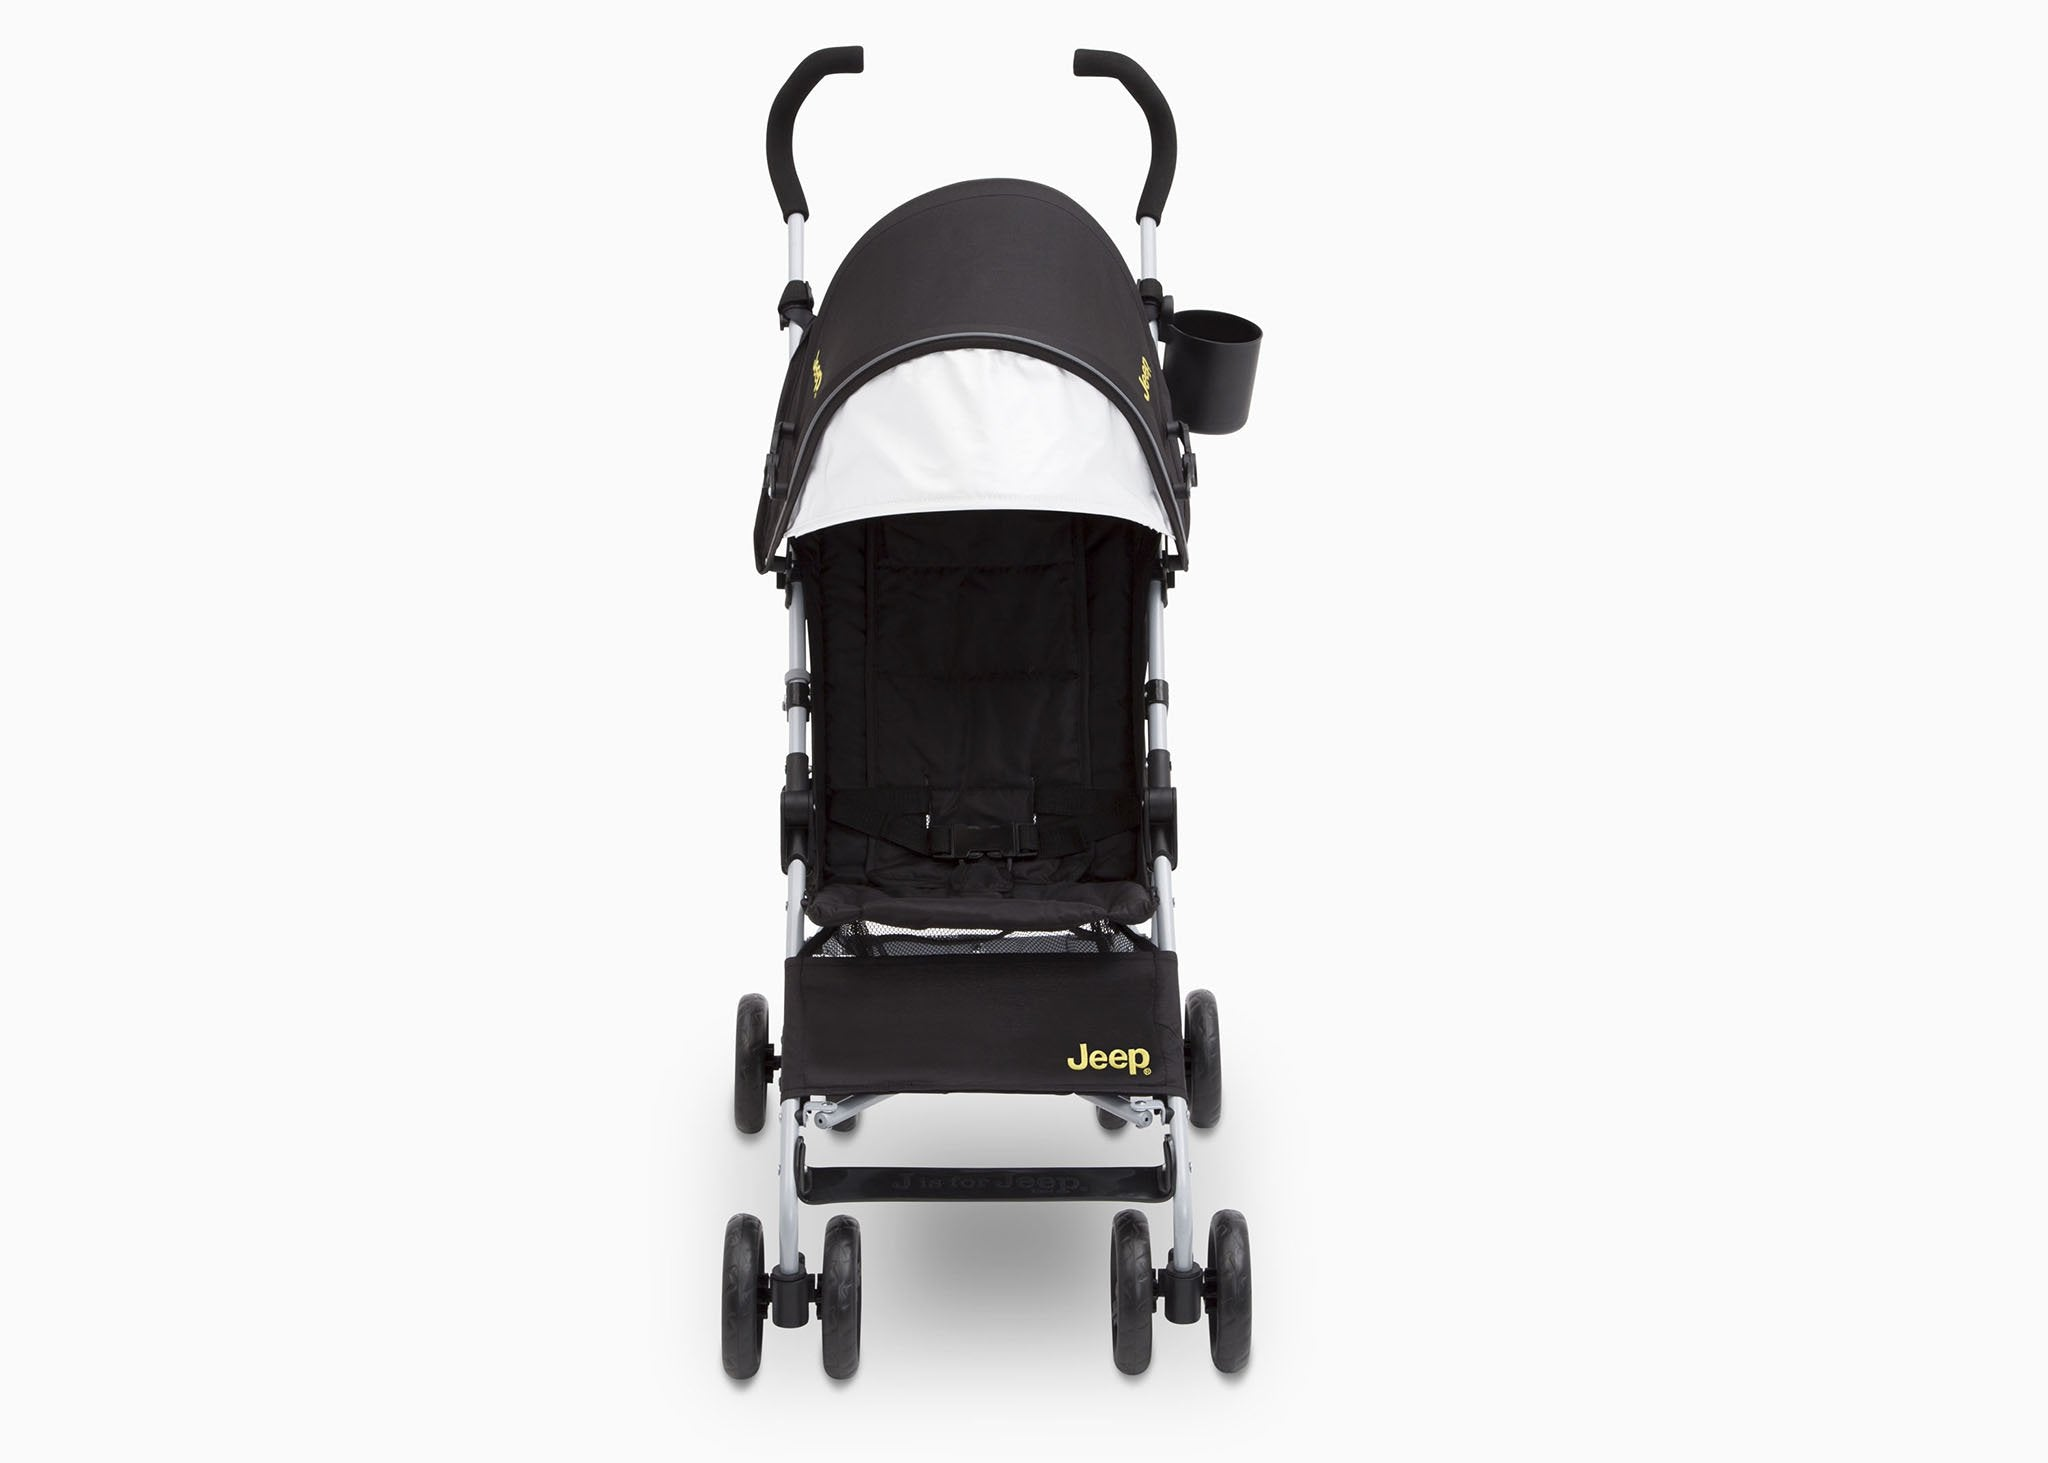 Jeep North Star Stroller by Delta Children, Black with Mellow Yellow (731), with extendable European-style canopy with sun visor